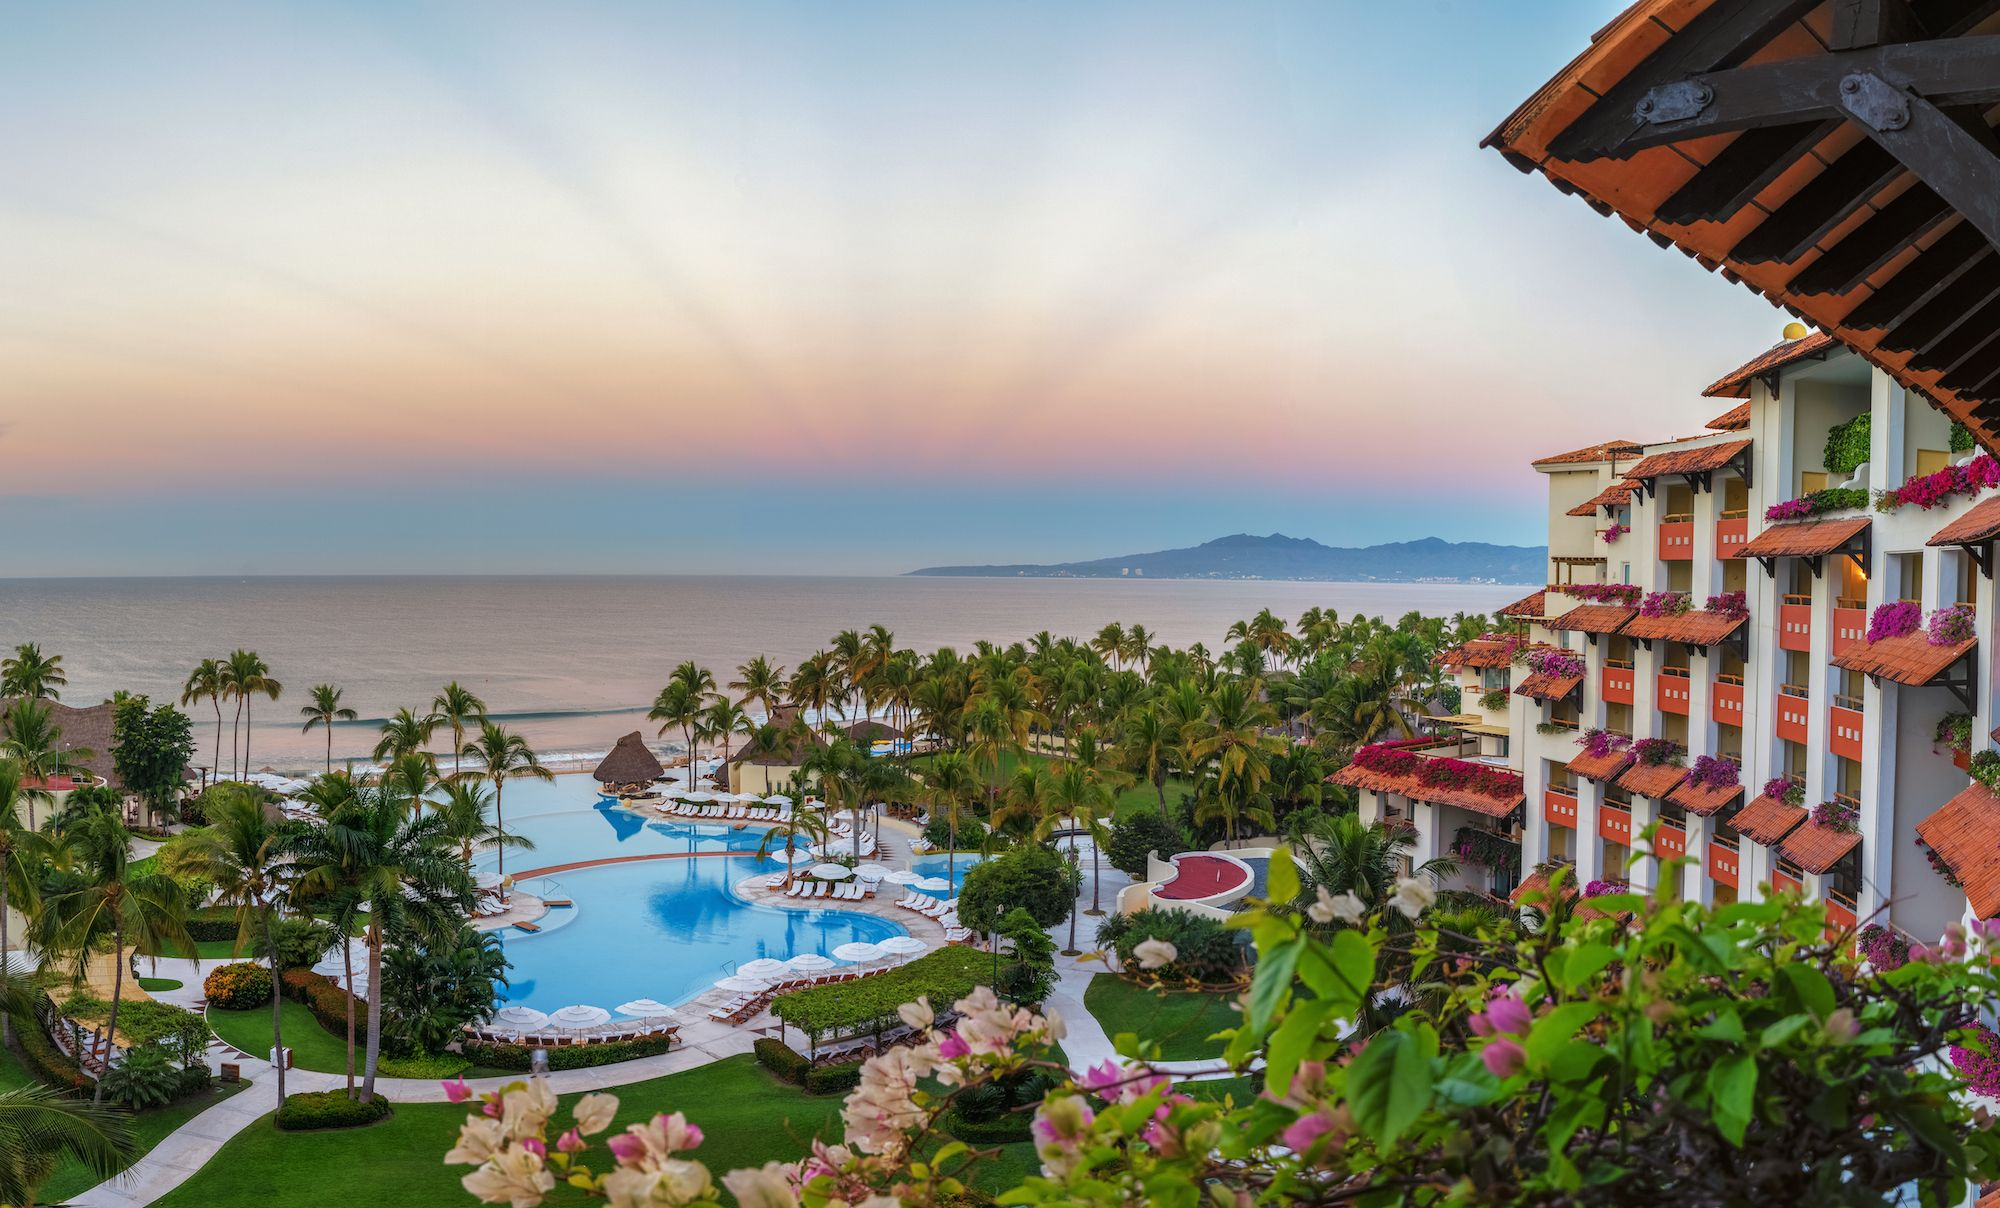 Vacation Resorts: Where the Best Vacation Is